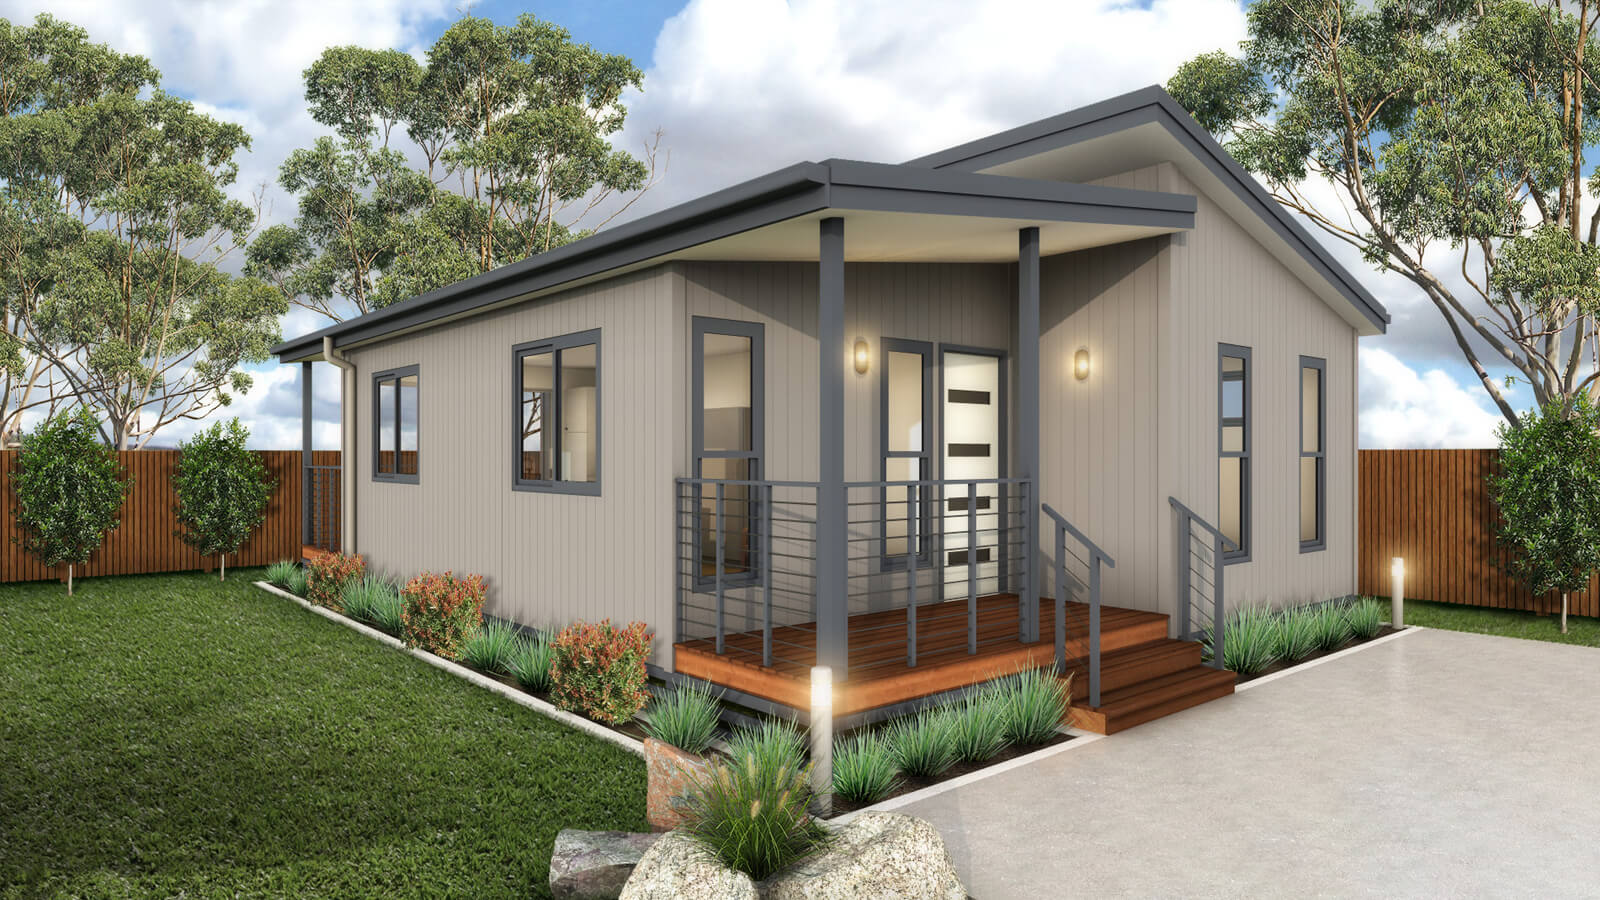 The bribie granny flat park cabin residential home for 2 bedroom granny flat designs